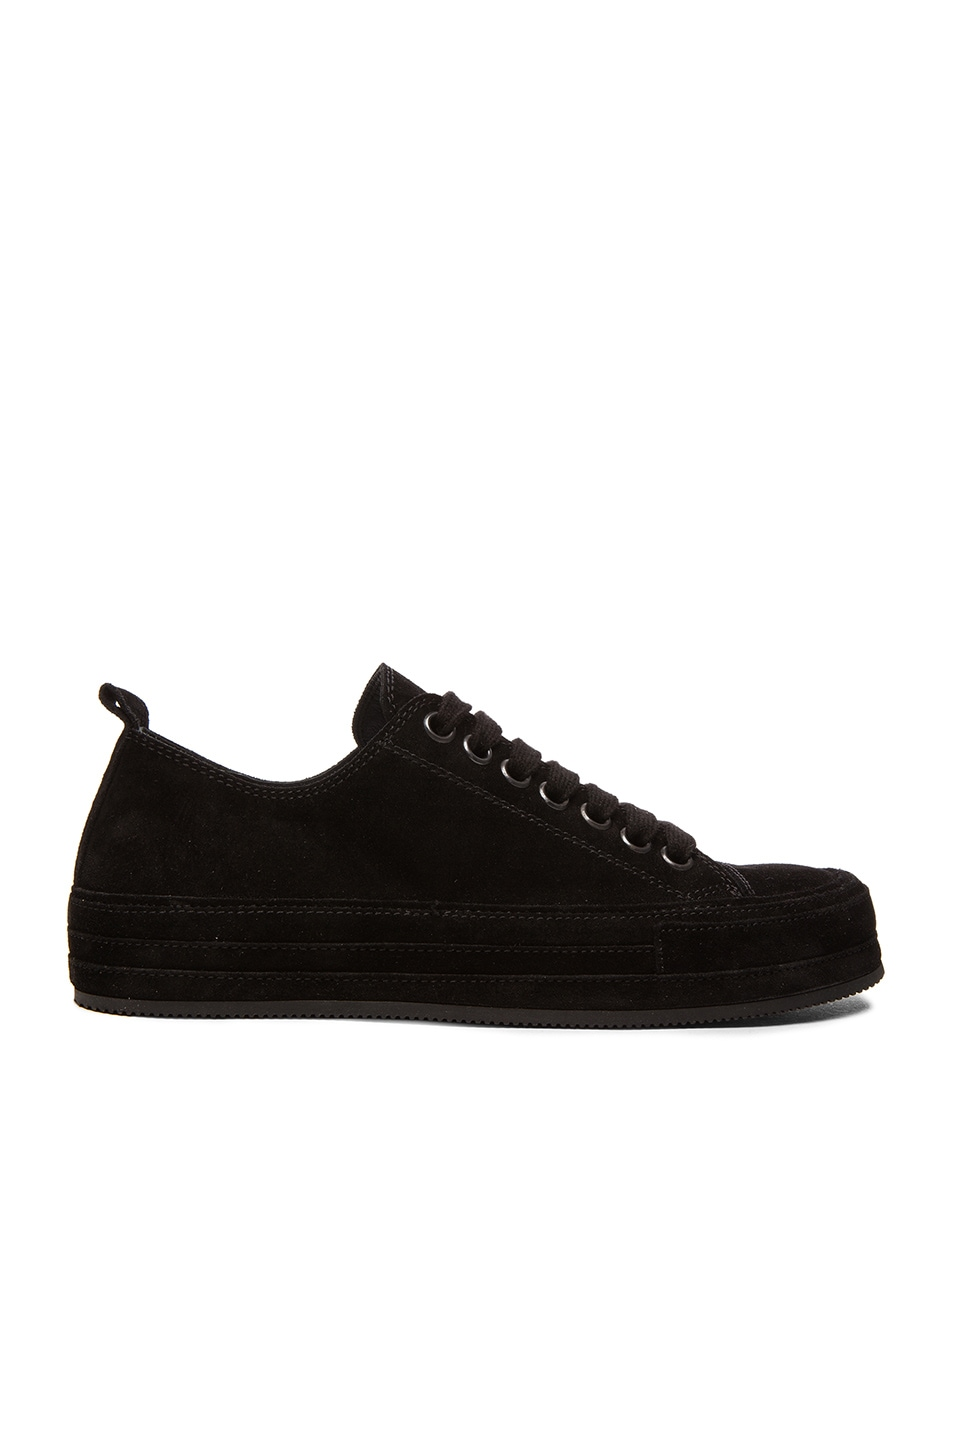 Image 1 of Ann Demeulemeester Sneakers in Black